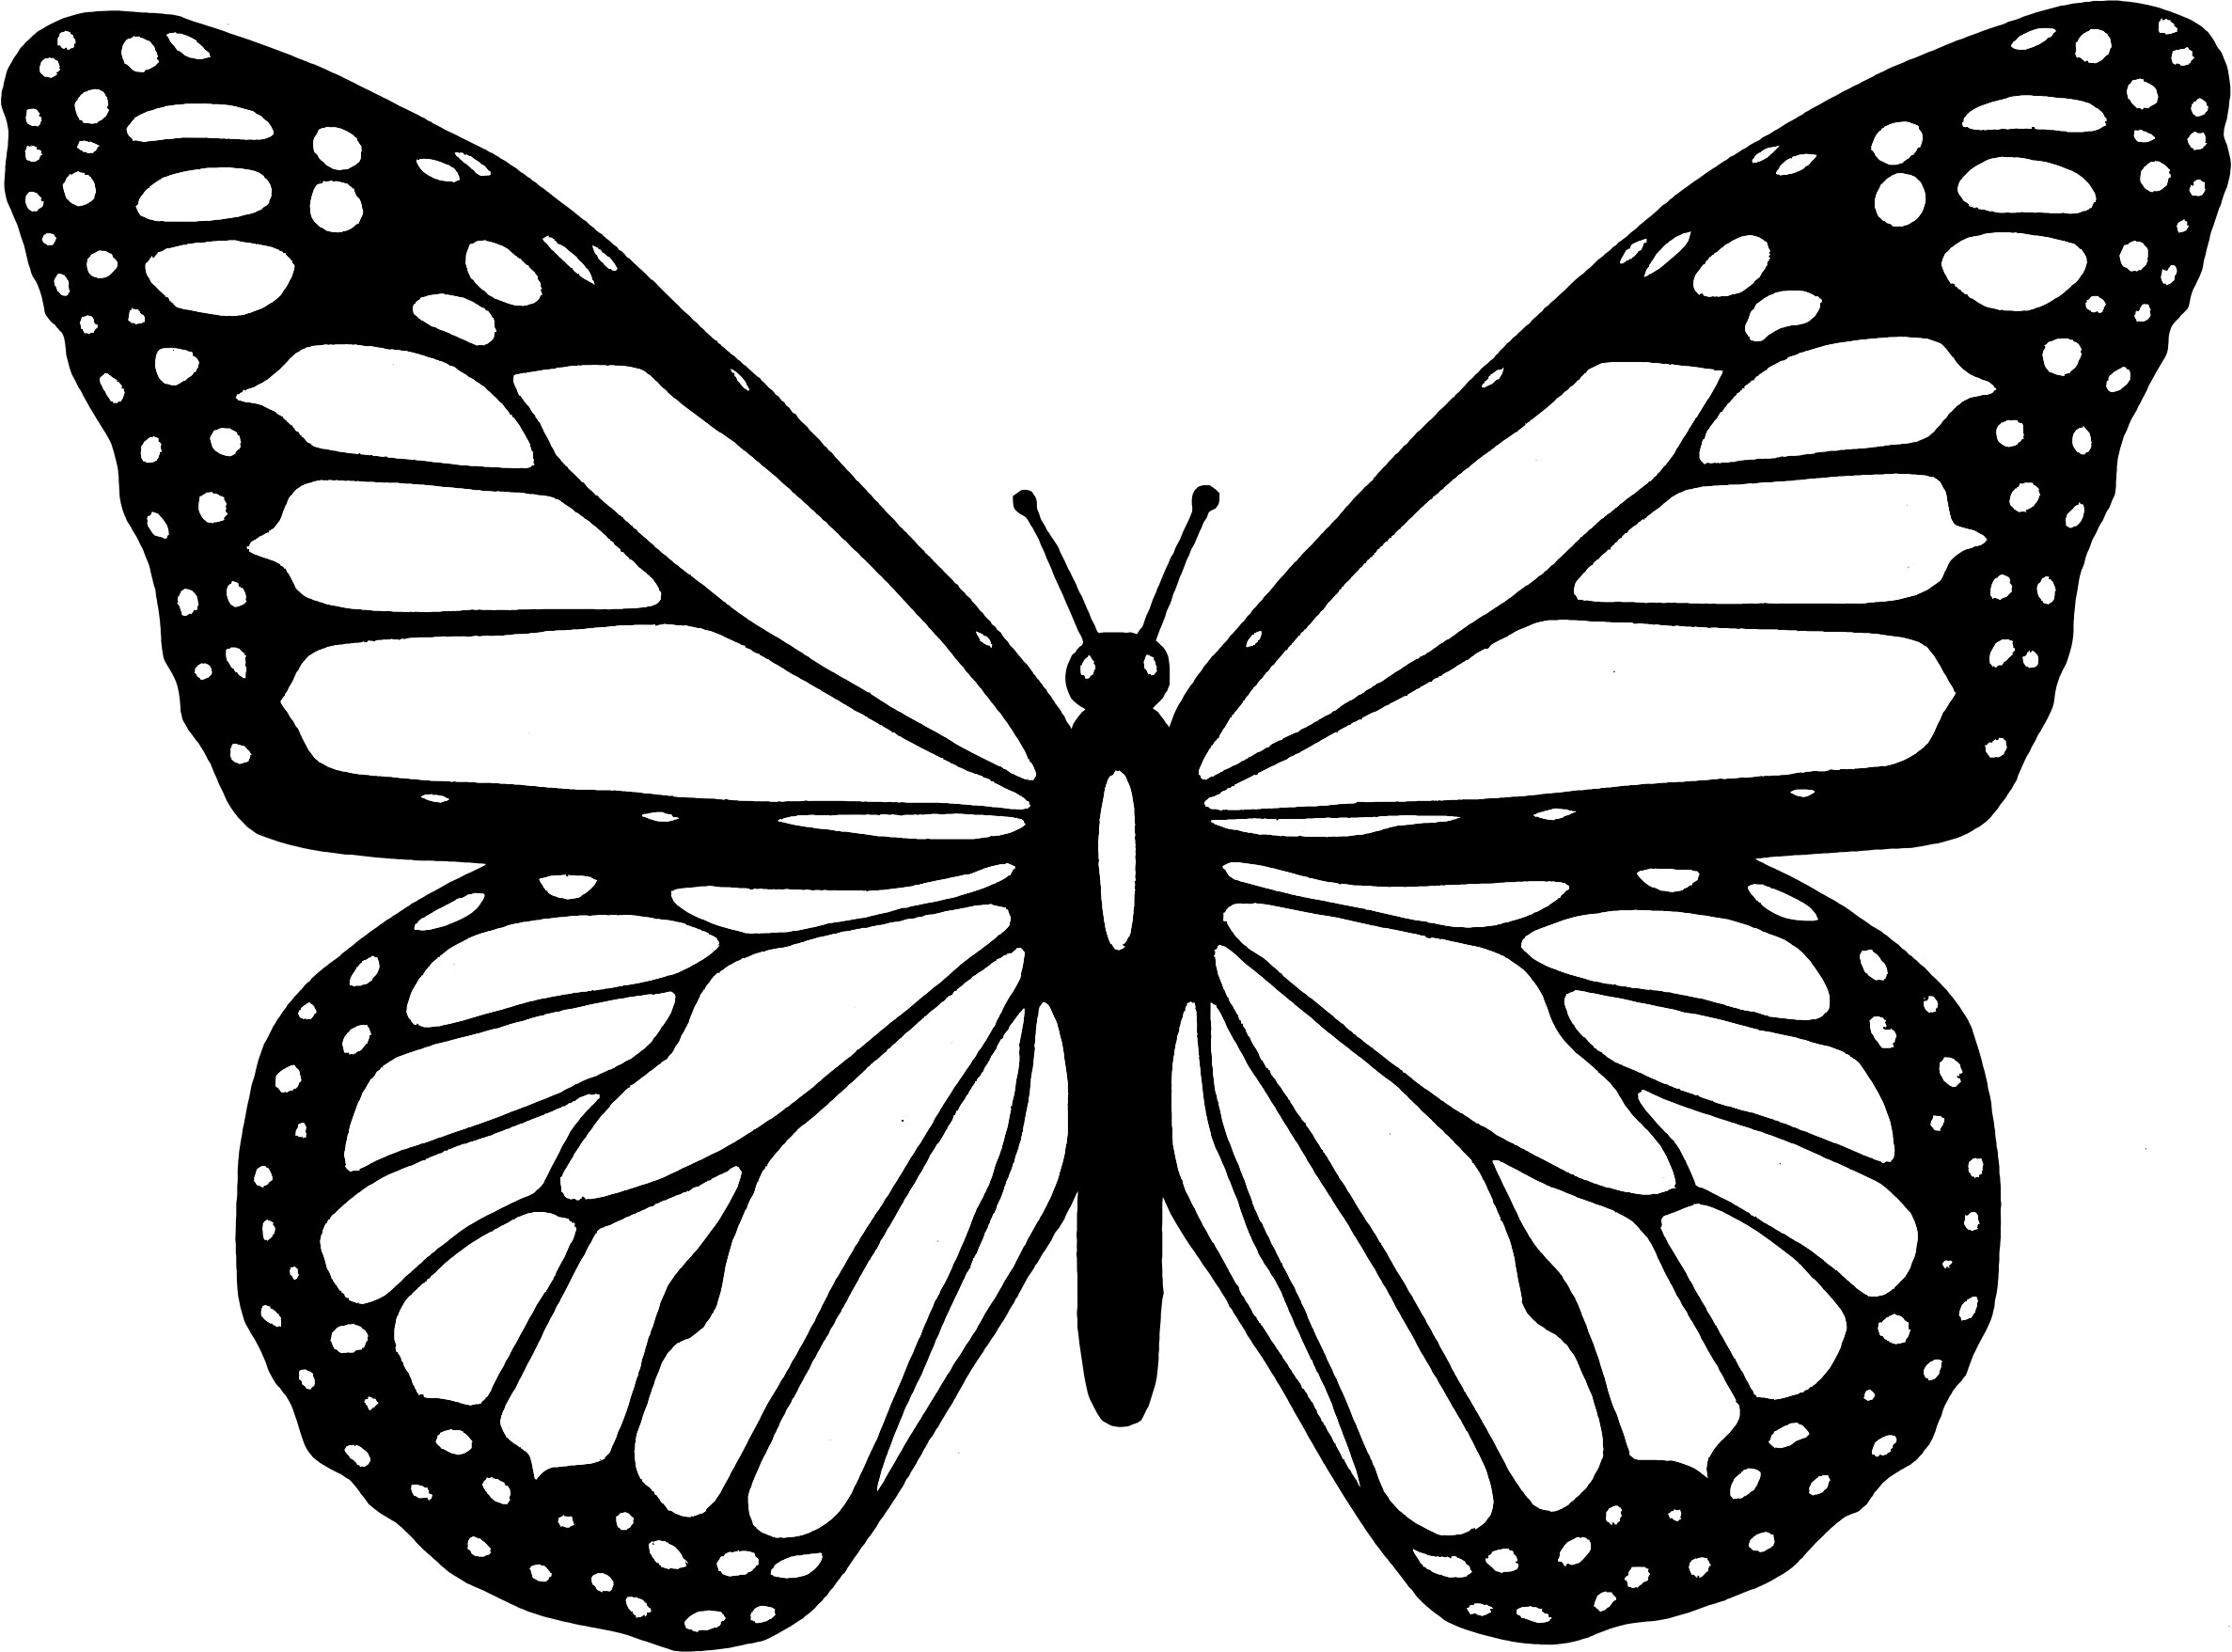 printable butterfly coloring sheets monarch butterfly coloring pages to print free coloring coloring butterfly printable sheets